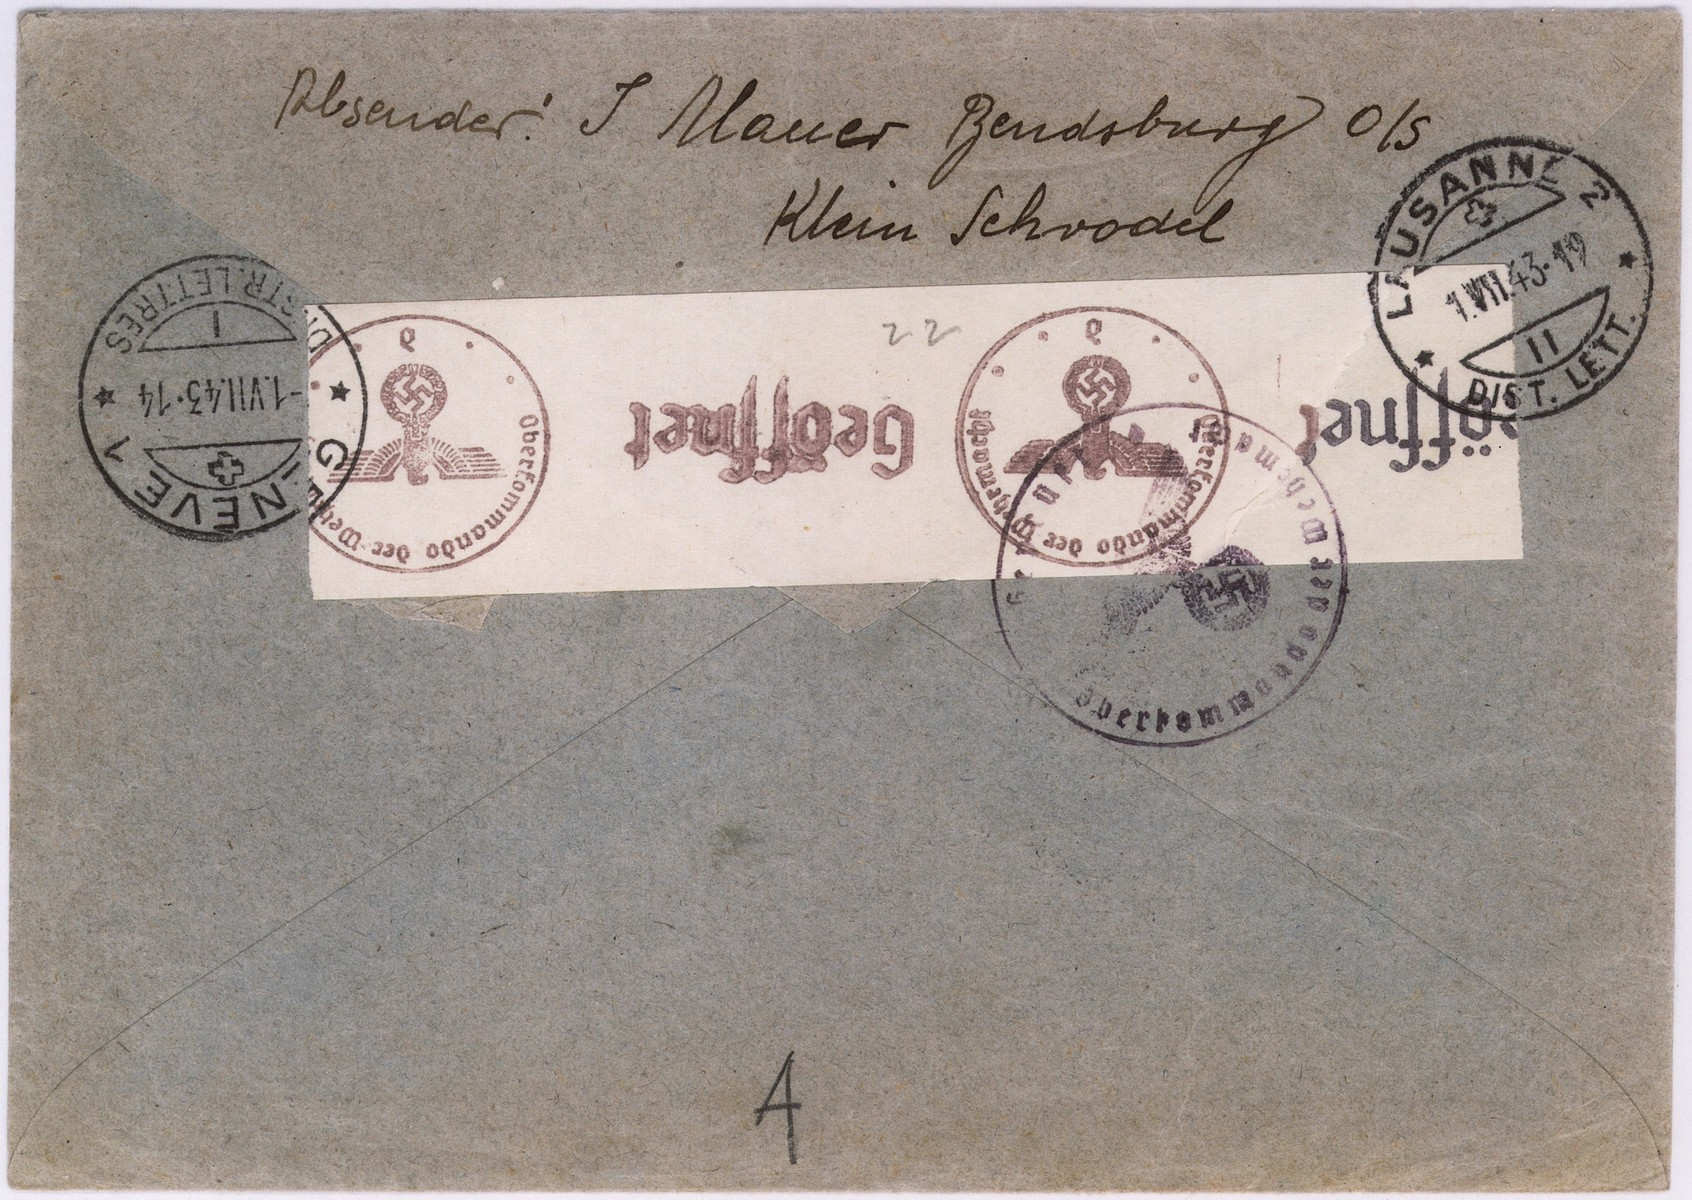 An envelope of a registered letter sent from the Bedzin ghetto in Srodula by J. Mauer to Alfred Schwartzbaum in Lausanne, Switzerland.  On the back of the envelope there is a piece of tape with the stamp of the German censor.